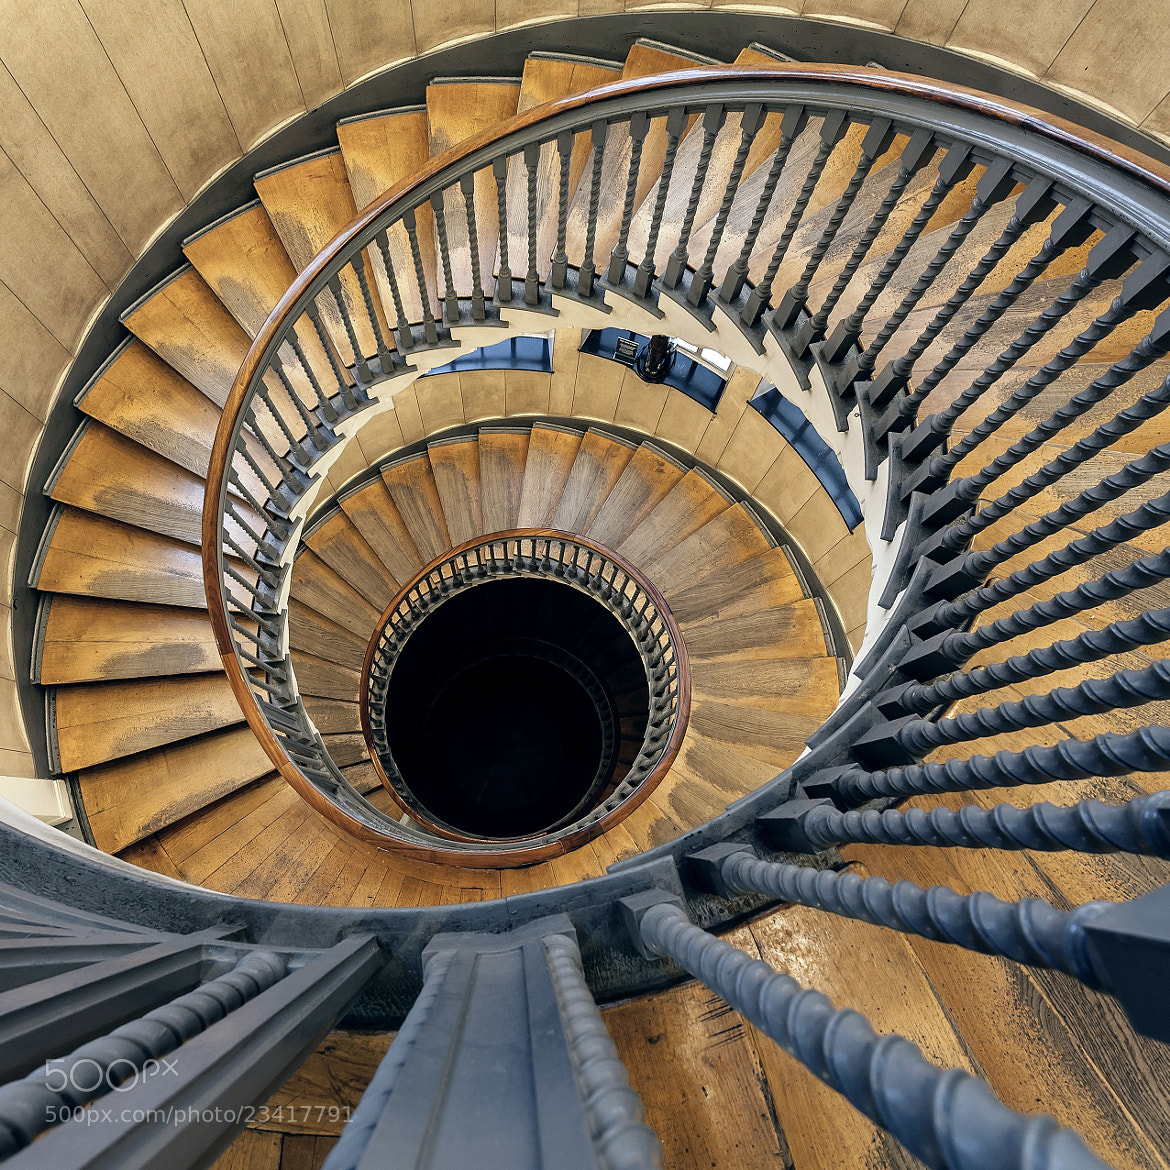 Photograph Downward Helix by Mike Barber on 500px